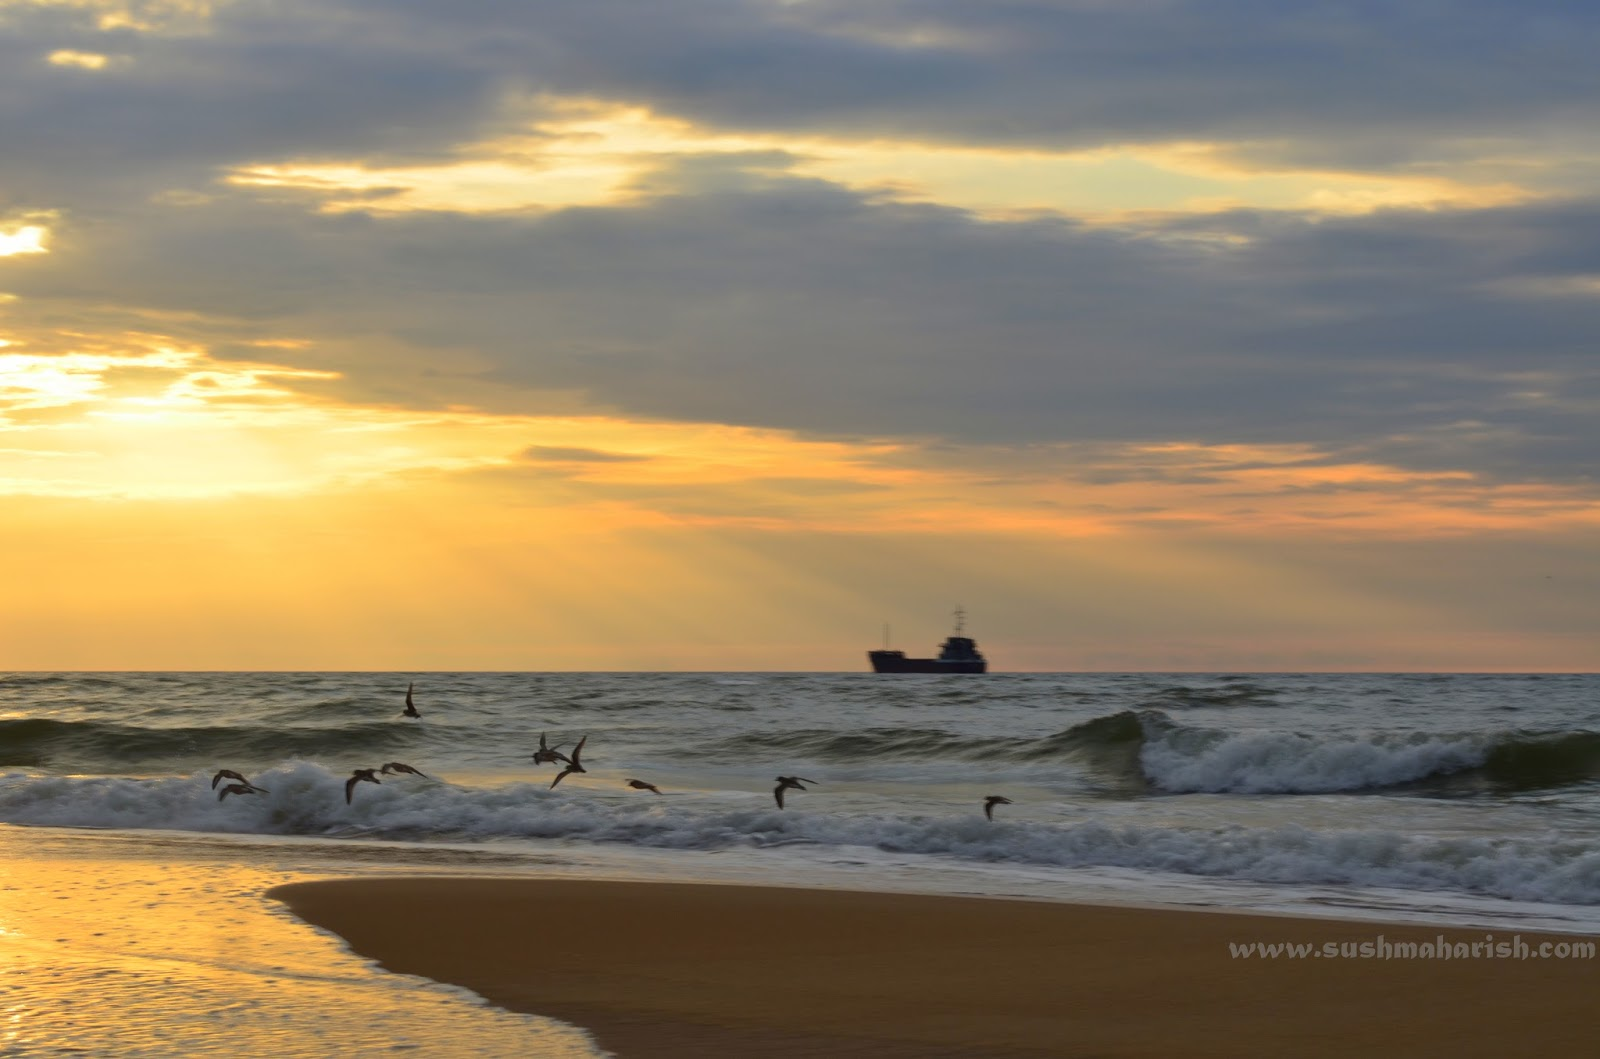 Two Best Beaches Of Udupi - Bengre The Silent Estuary And The Swarming Malpe 7